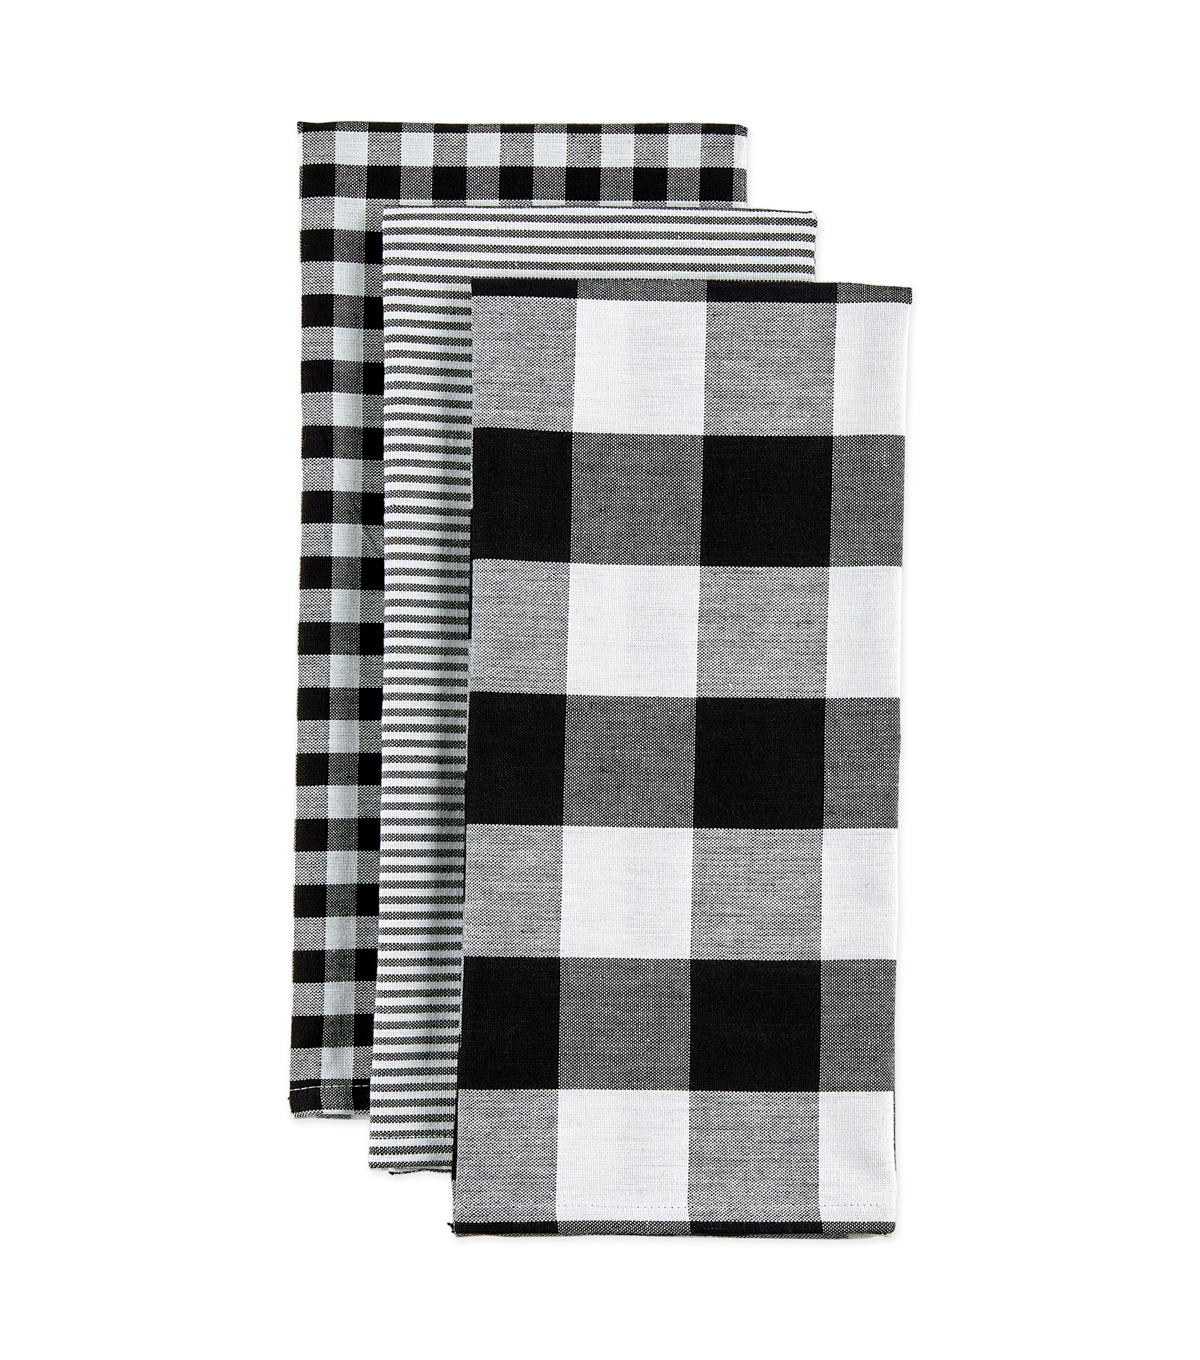 Design Imports Mixed Check Kitchen Towel Set-Black & White